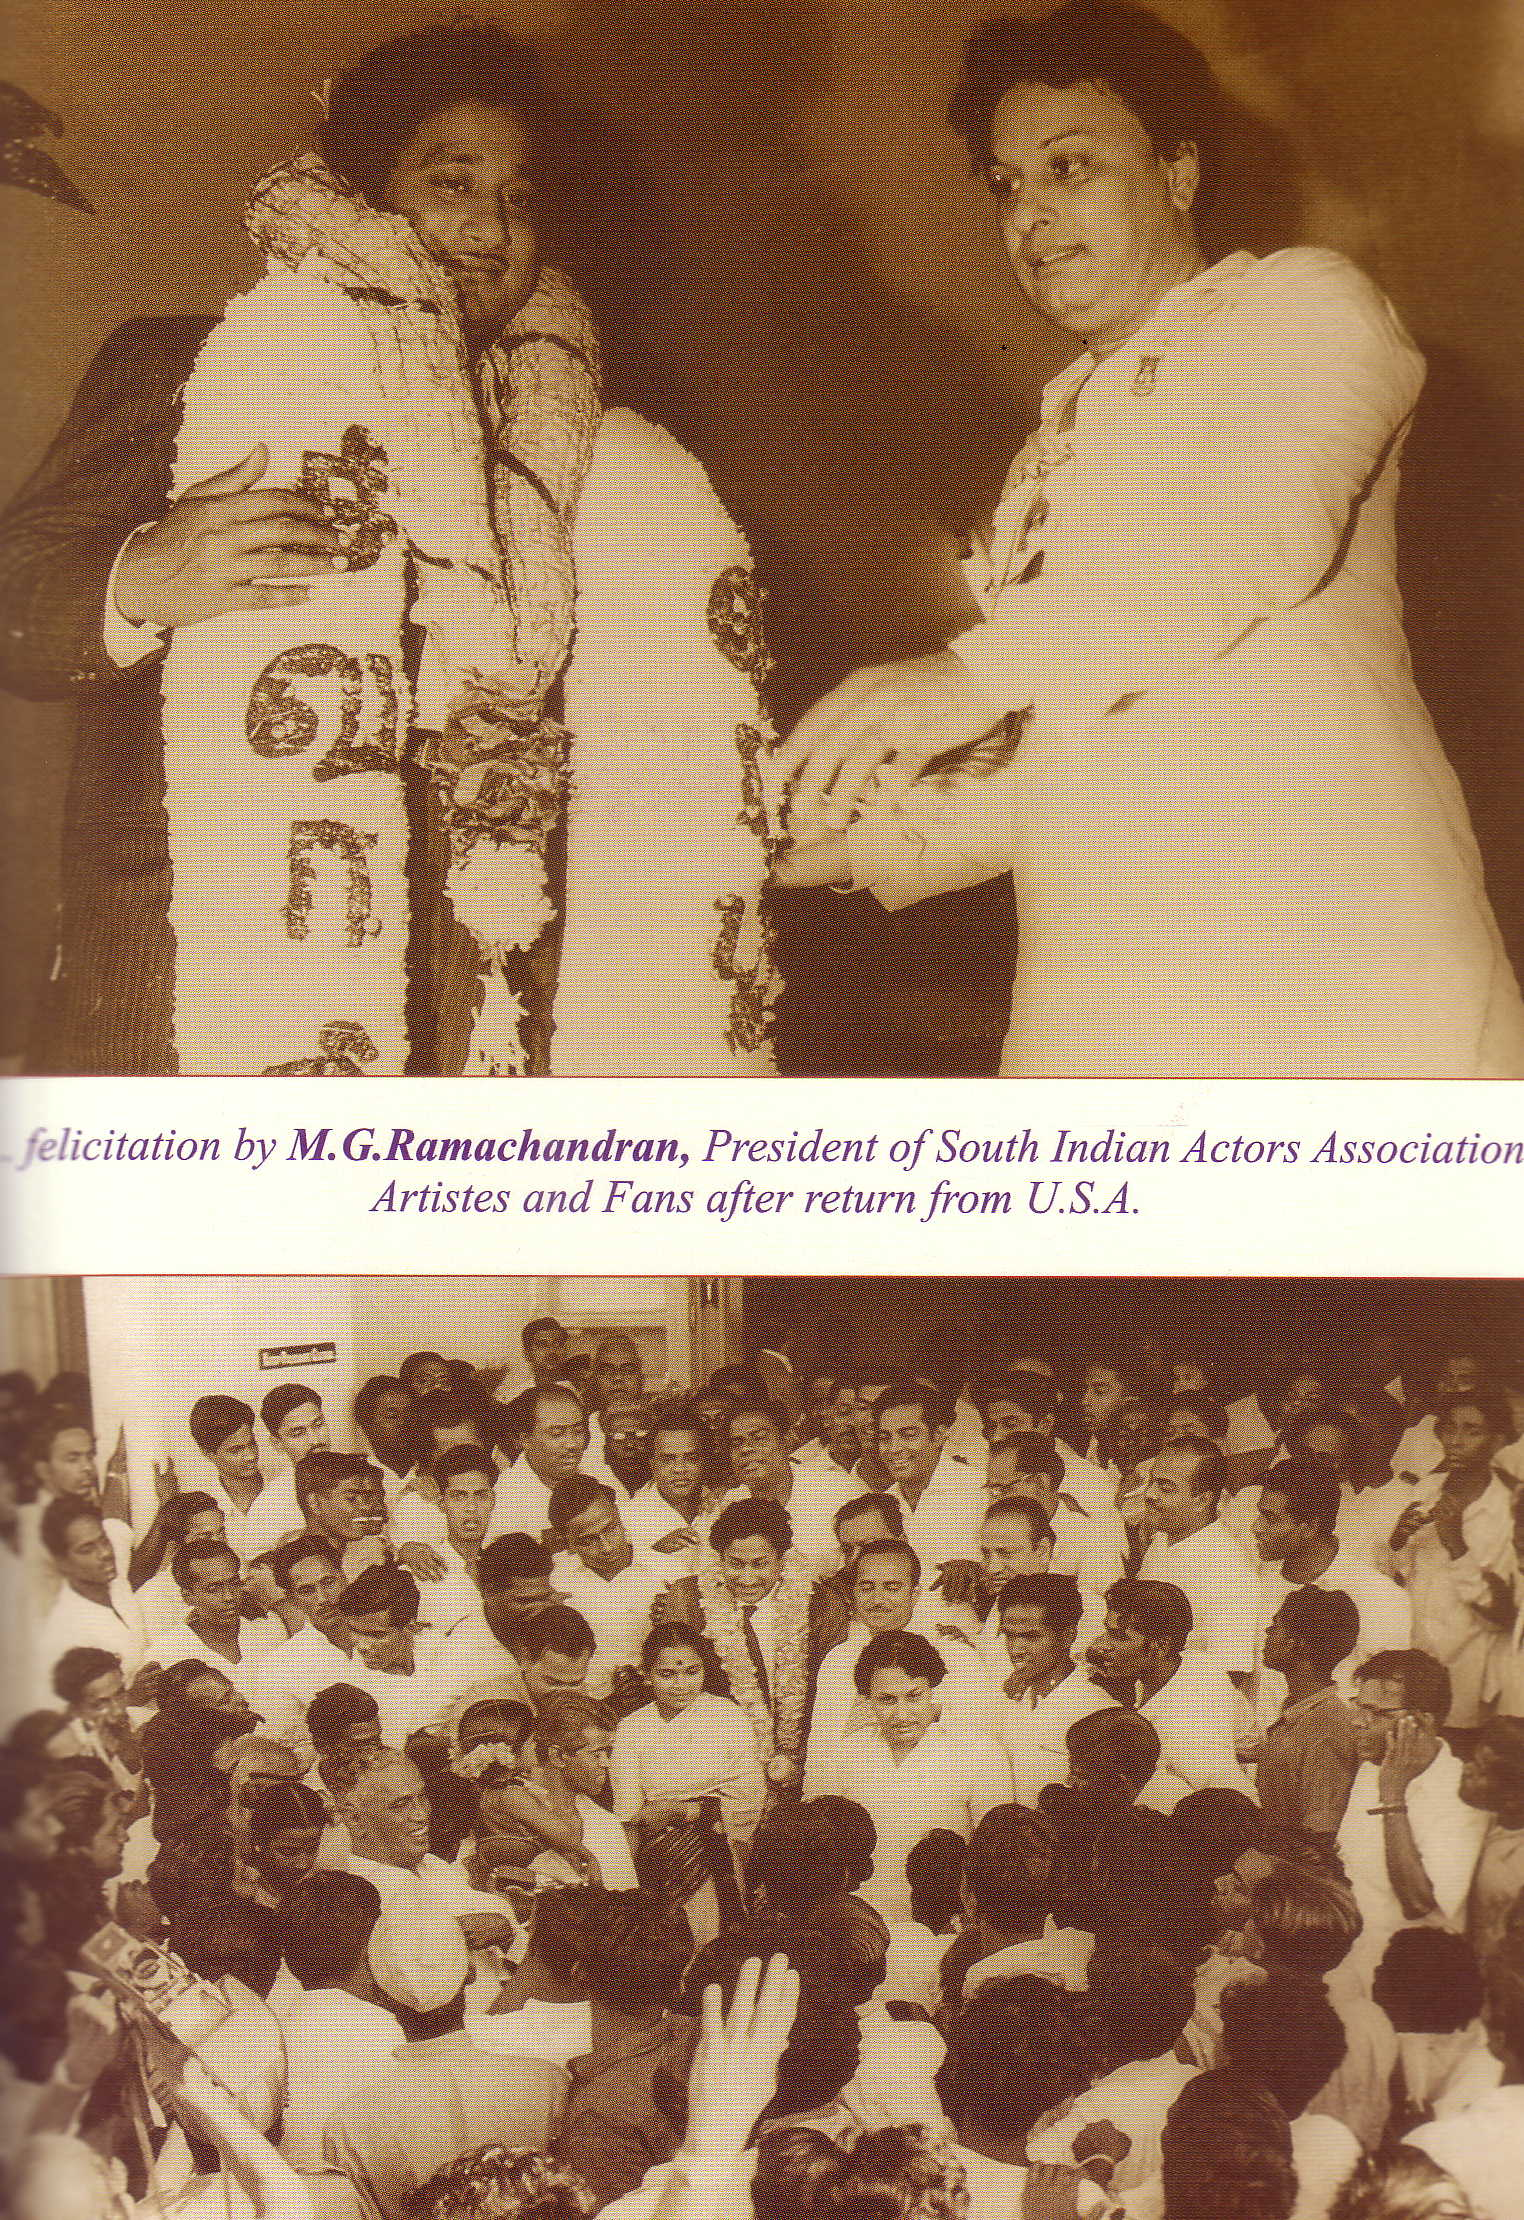 Sivaji Ganesan felicited by MGR in 1962